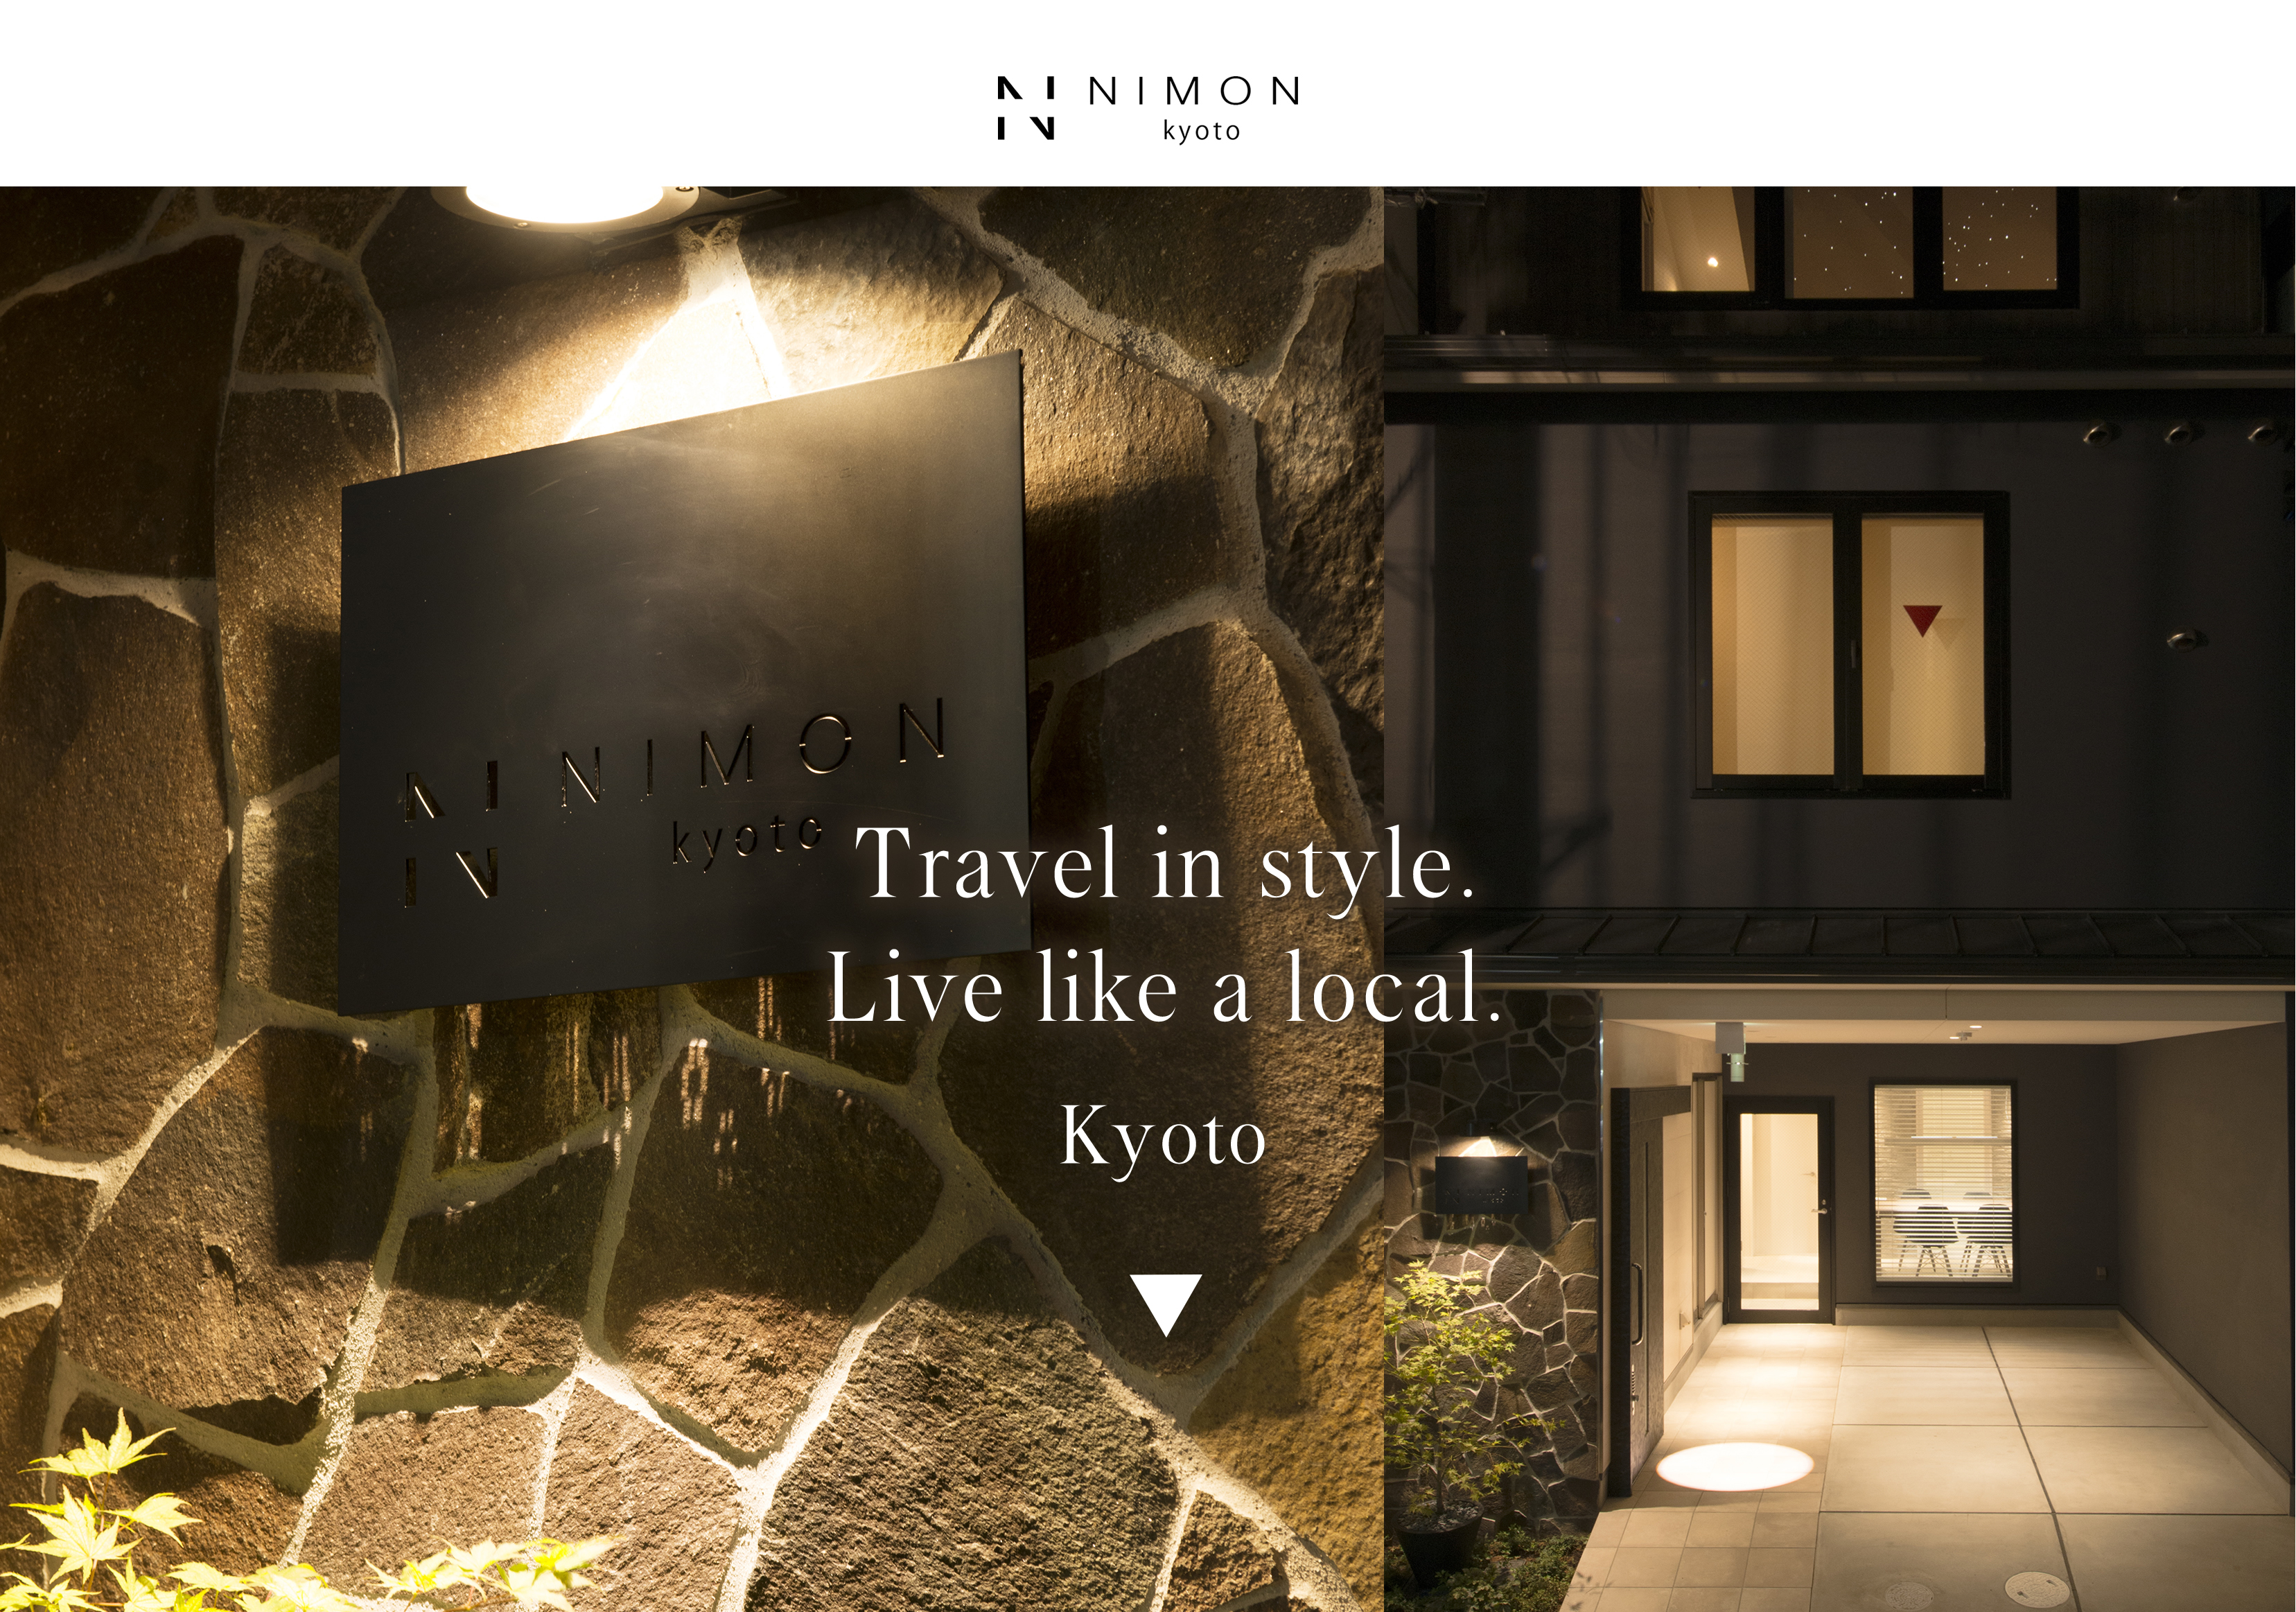 maisonette serviced apartment NIMON kyoto